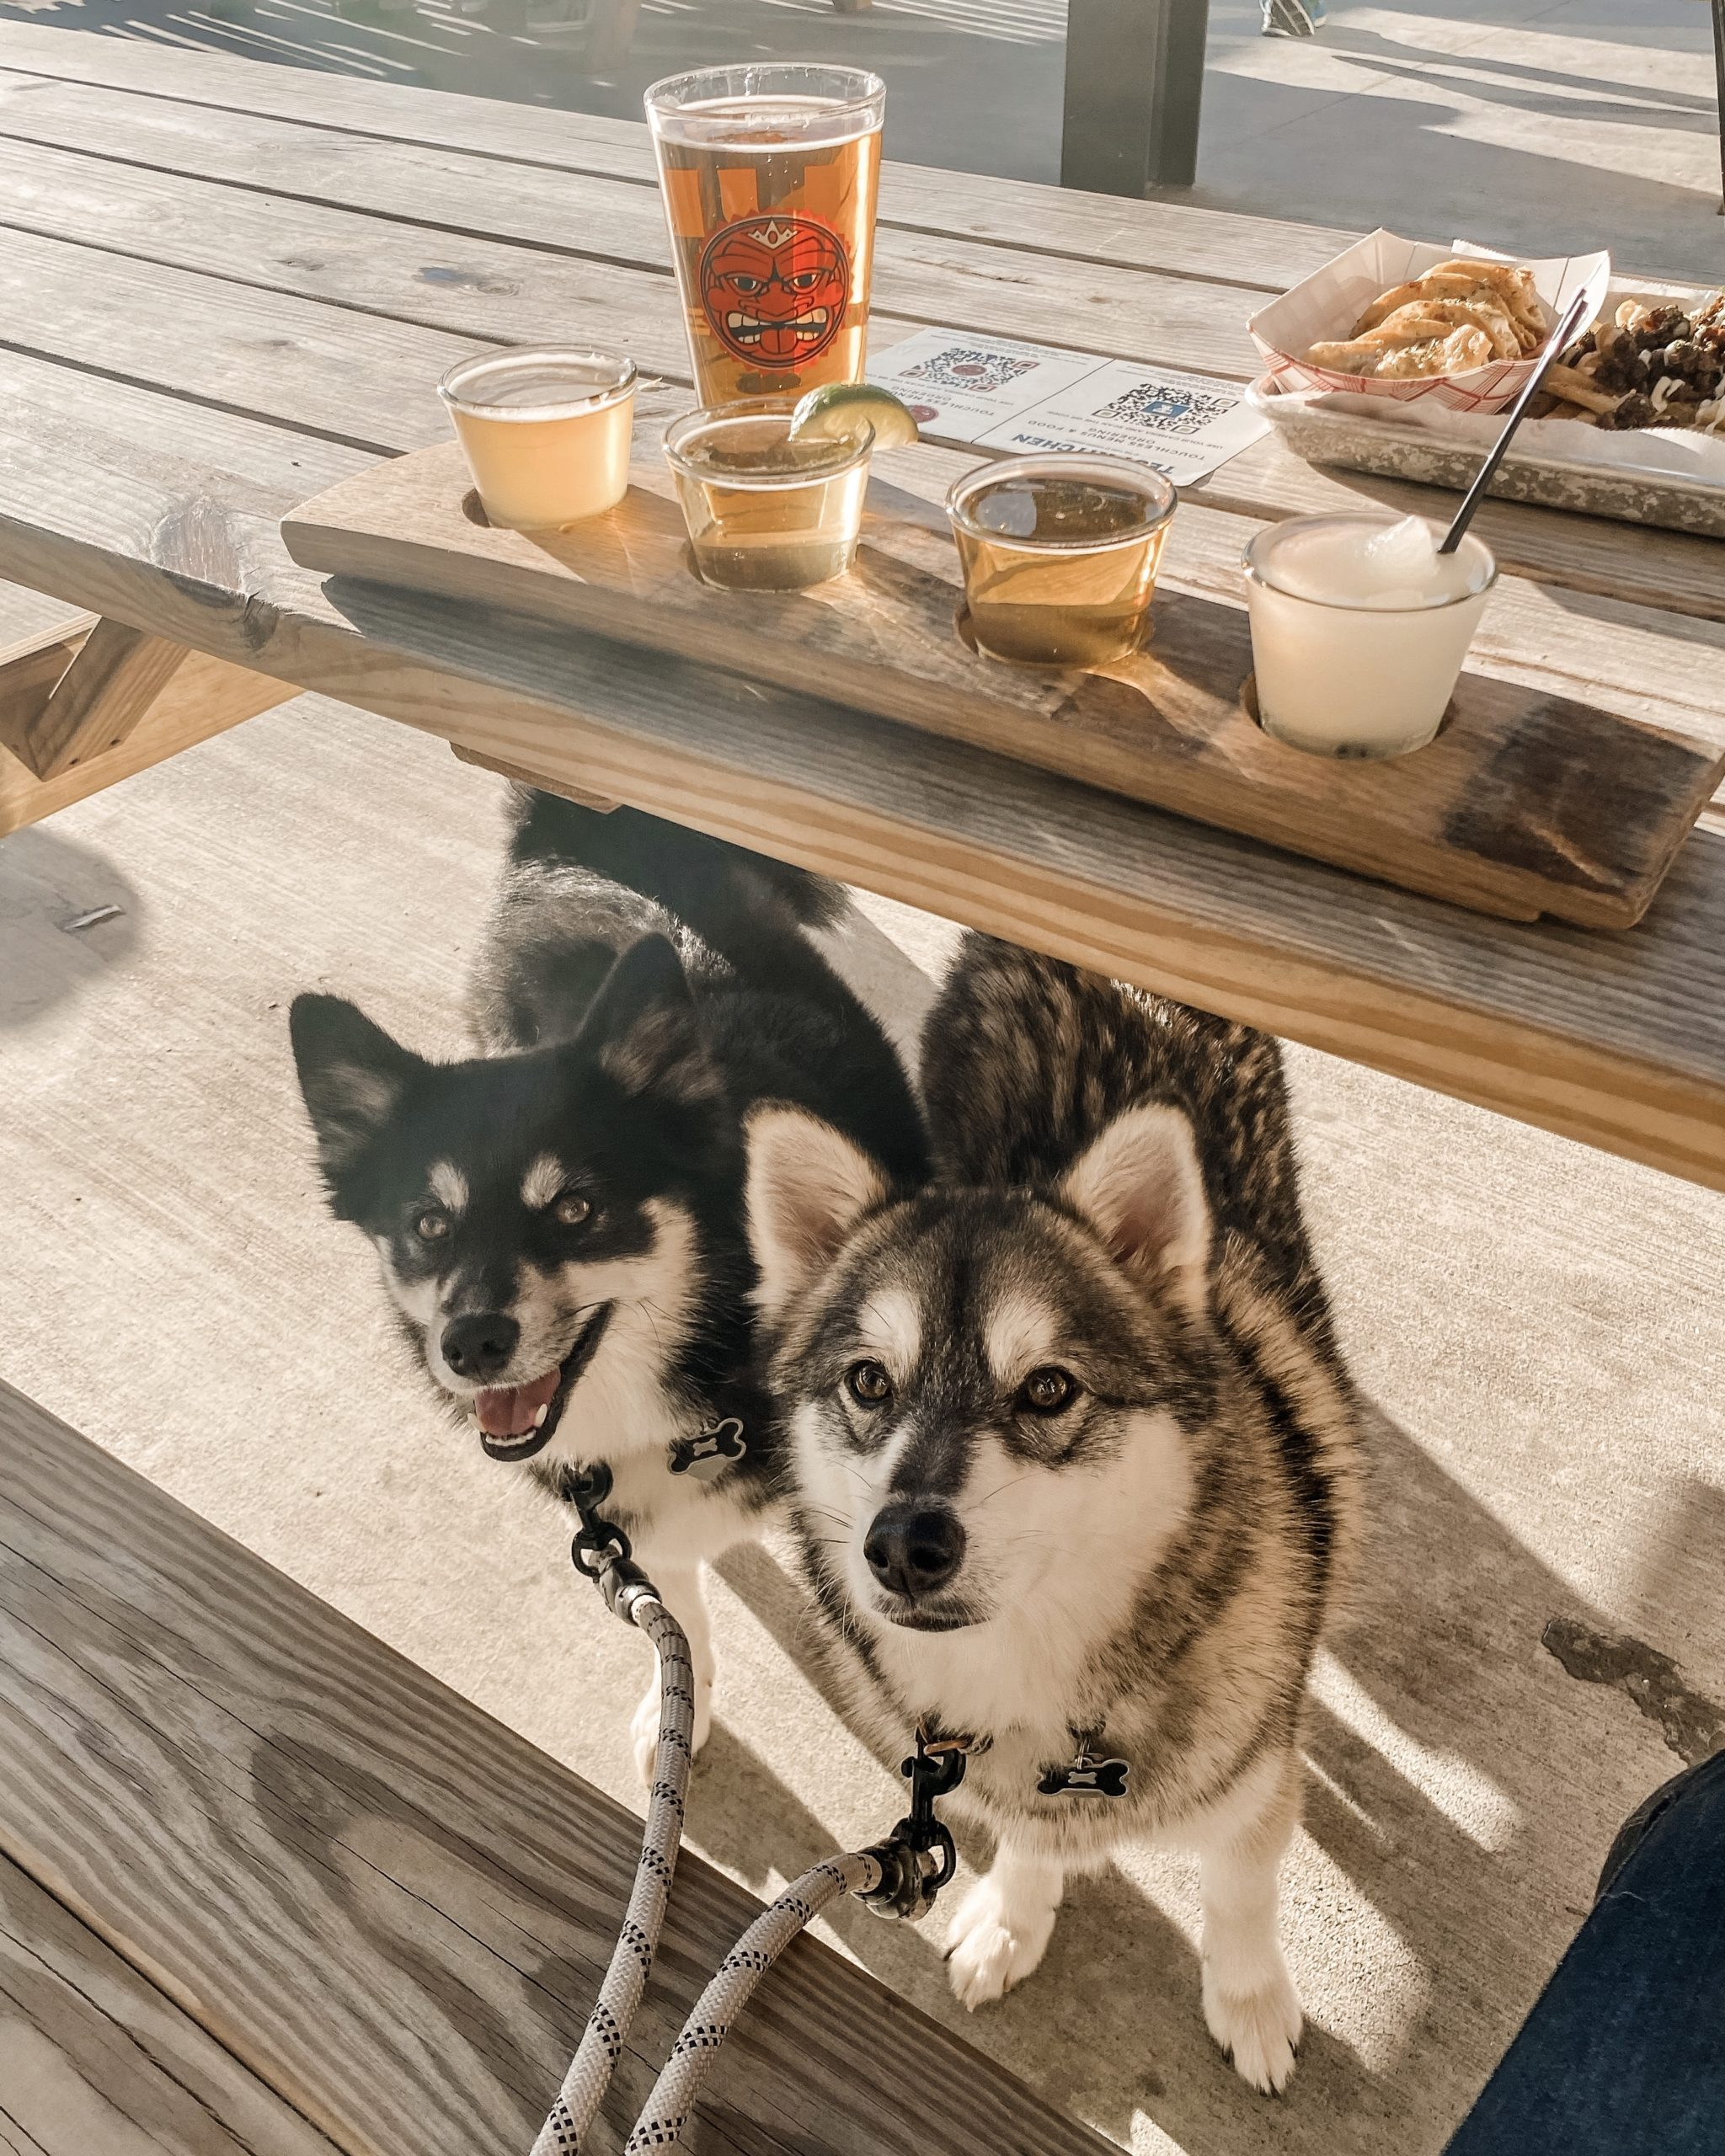 two dogs peeking their heads out from underneath a table